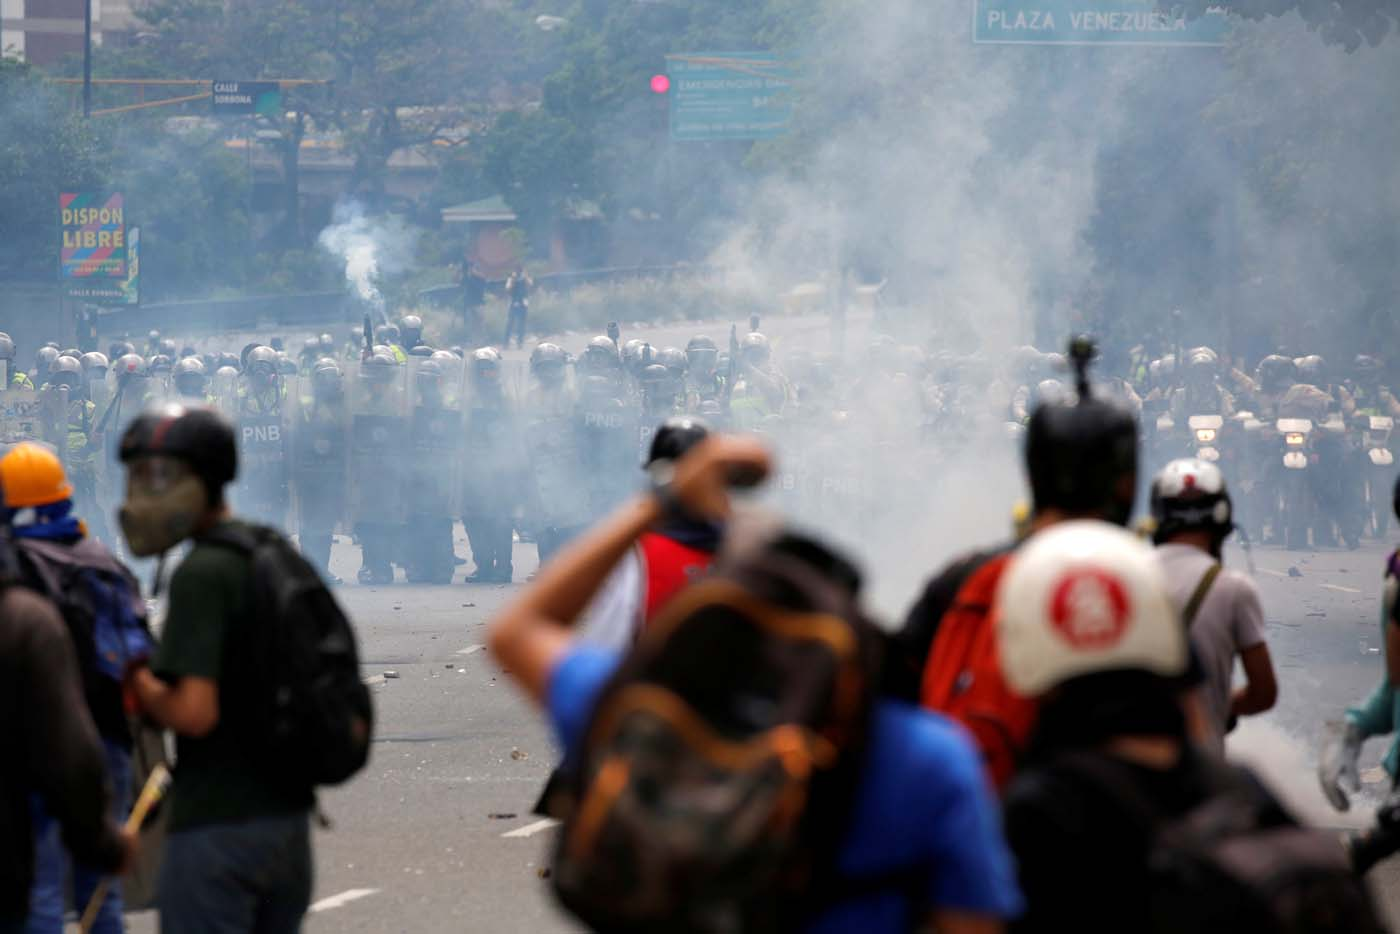 Riot security forces take position while clashing with demonstrators rallying against President Nicolas Maduro in Caracas, Venezuela, May 24, 2017. REUTERS/Carlos Garcia Rawlins